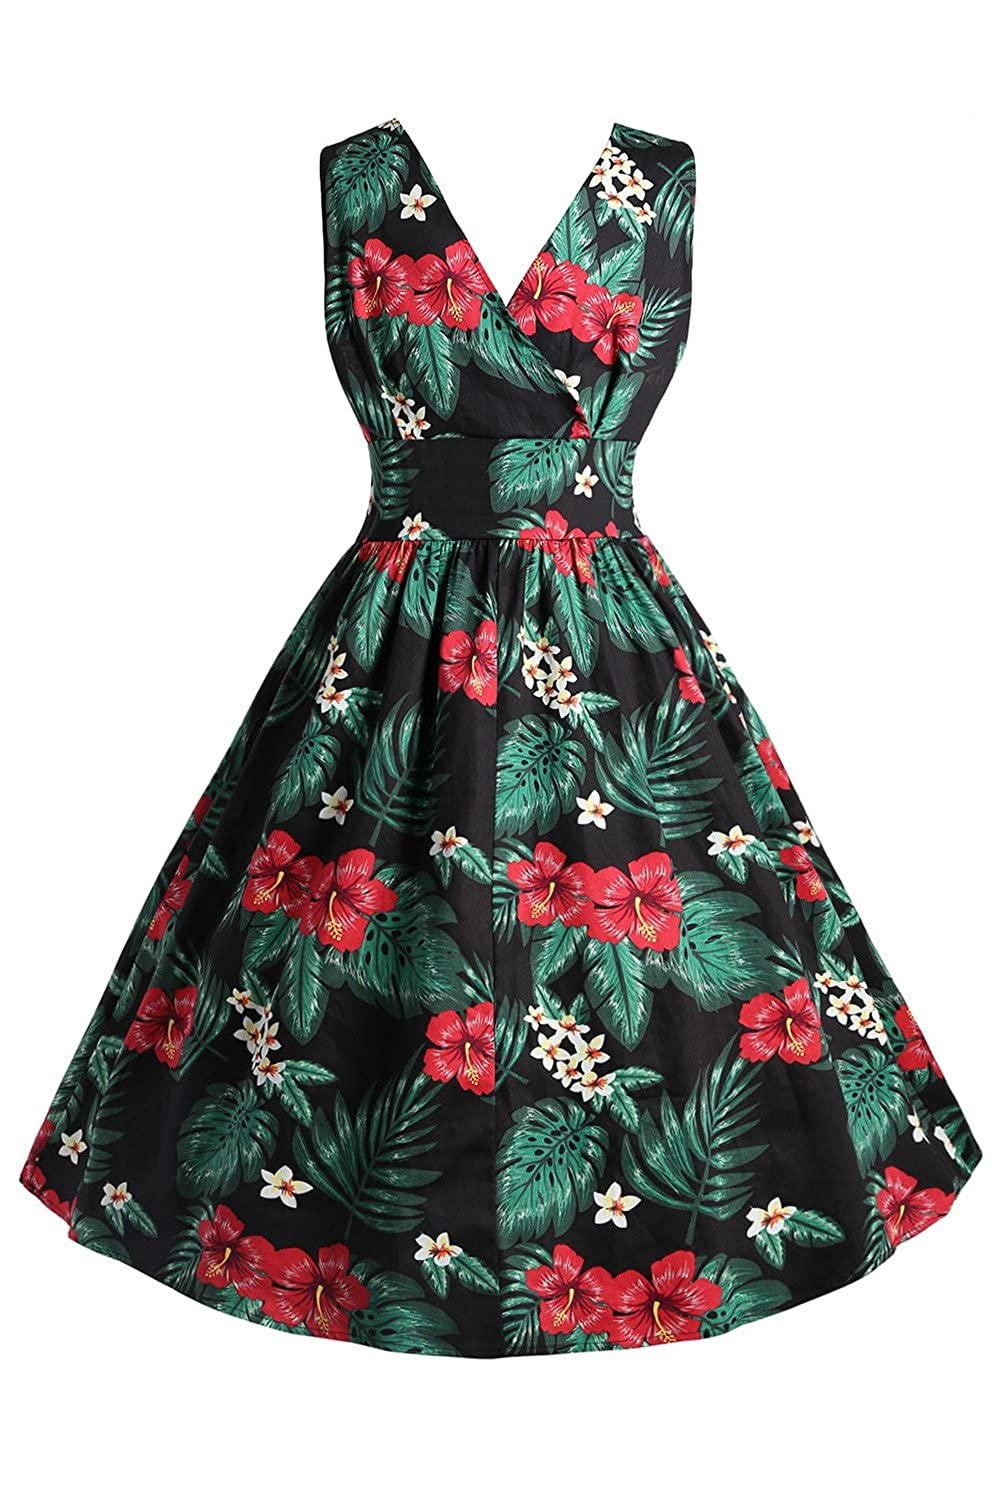 Babyonlinedress® Damen Ärmellos Pin up Vintage Kleid Abendkleider ...